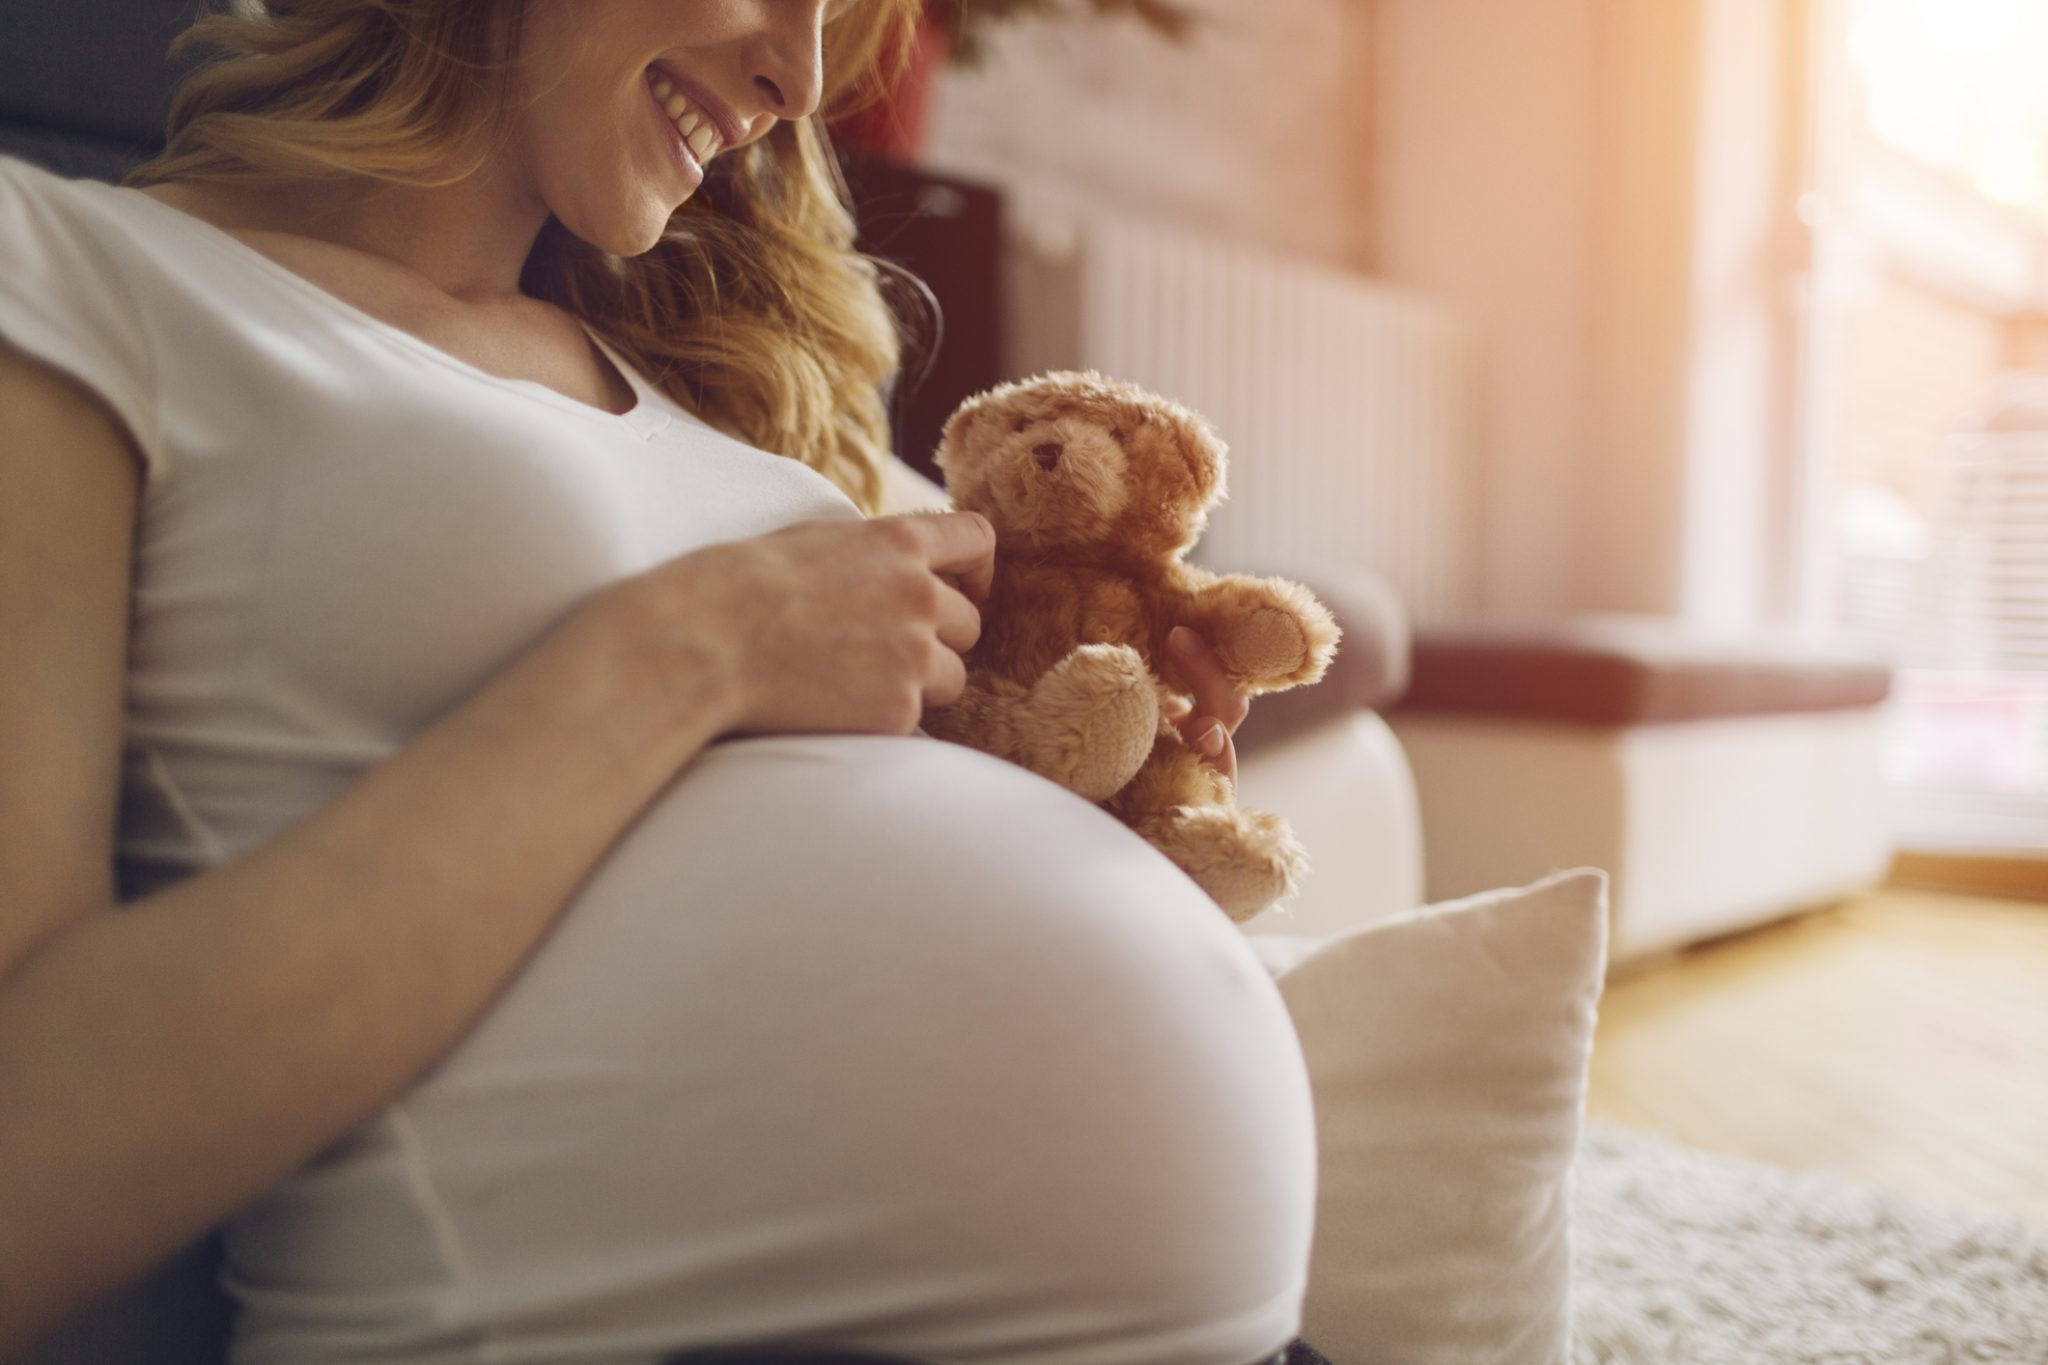 How to Find a Surrogate Mother Mexico?